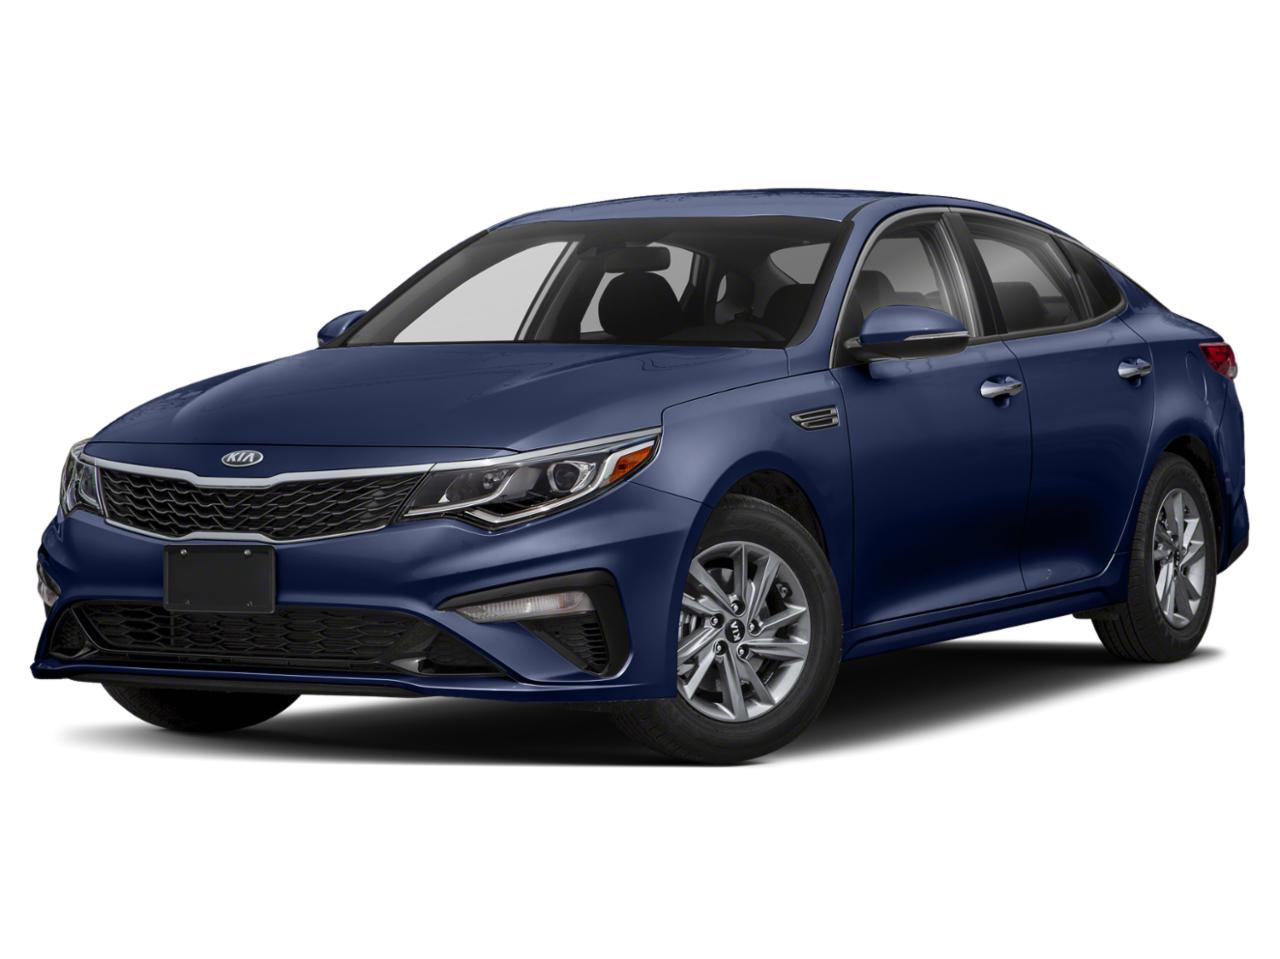 2019 Kia Optima Vehicle Photo in Muncy, PA 17756